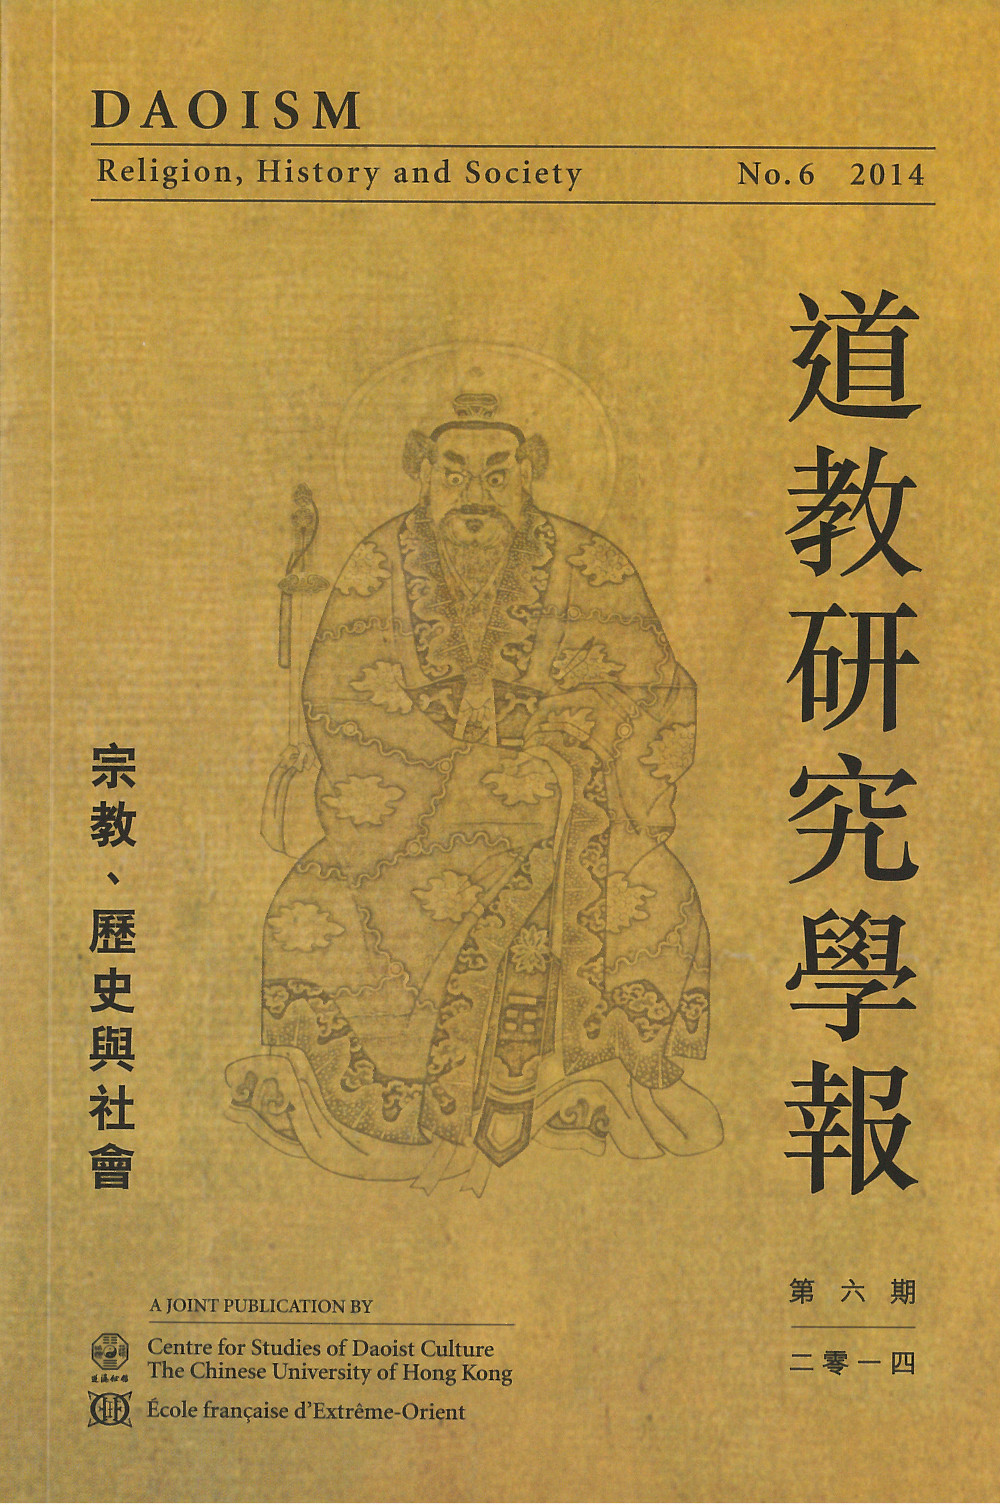 Daoism: Religion, History and Society 6 (2014)